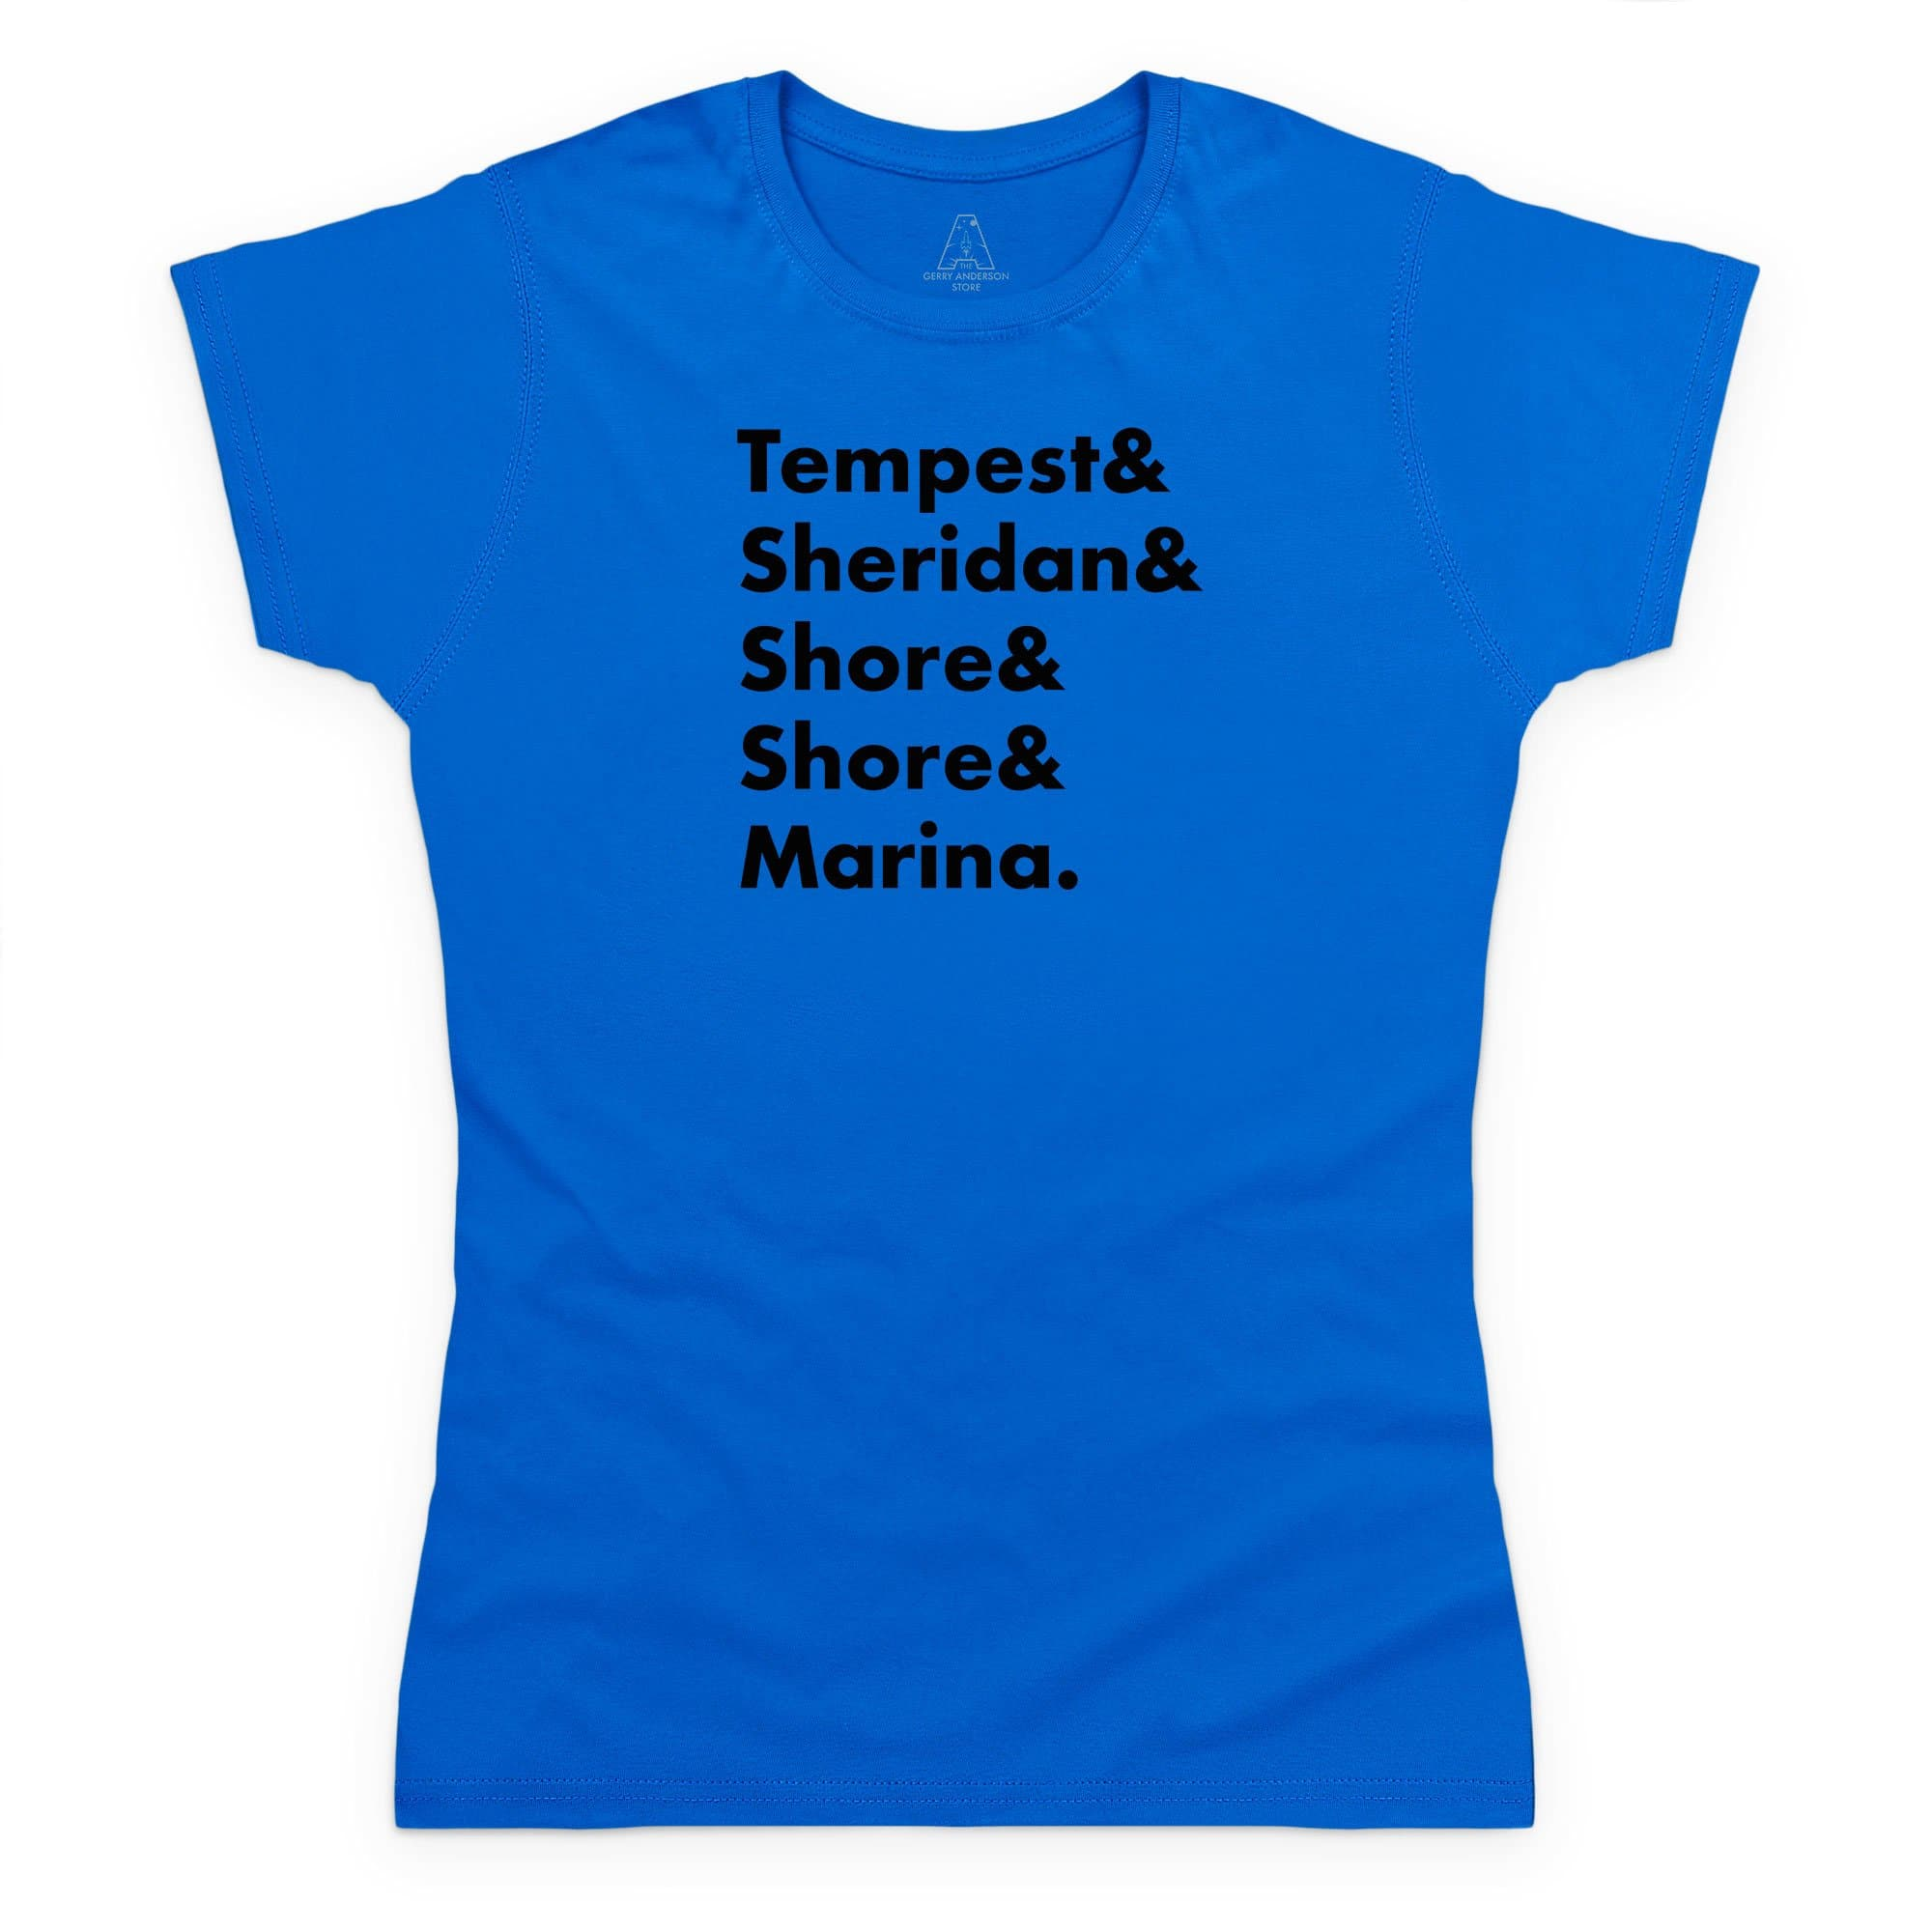 Heroes of Marineville Stingray Women's T-Shirt [Official & Exclusive] - The Gerry Anderson Store